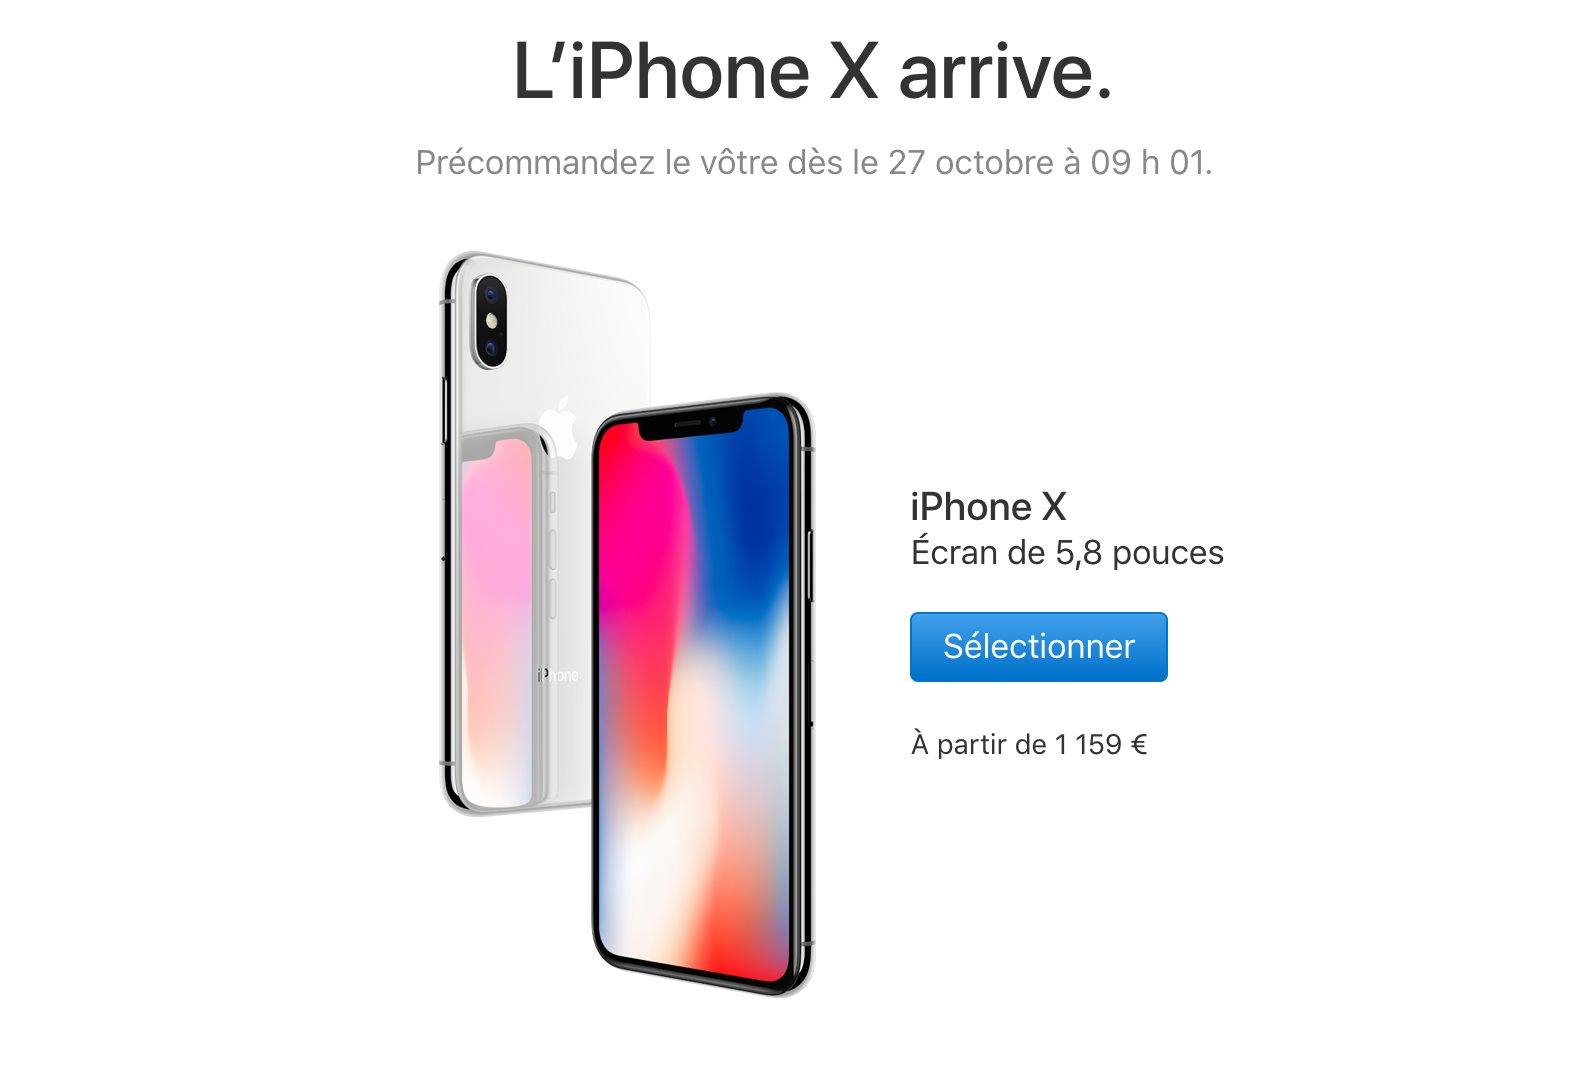 iphone x pourquoi est il plus cher en france qu 39 aux etats unis. Black Bedroom Furniture Sets. Home Design Ideas